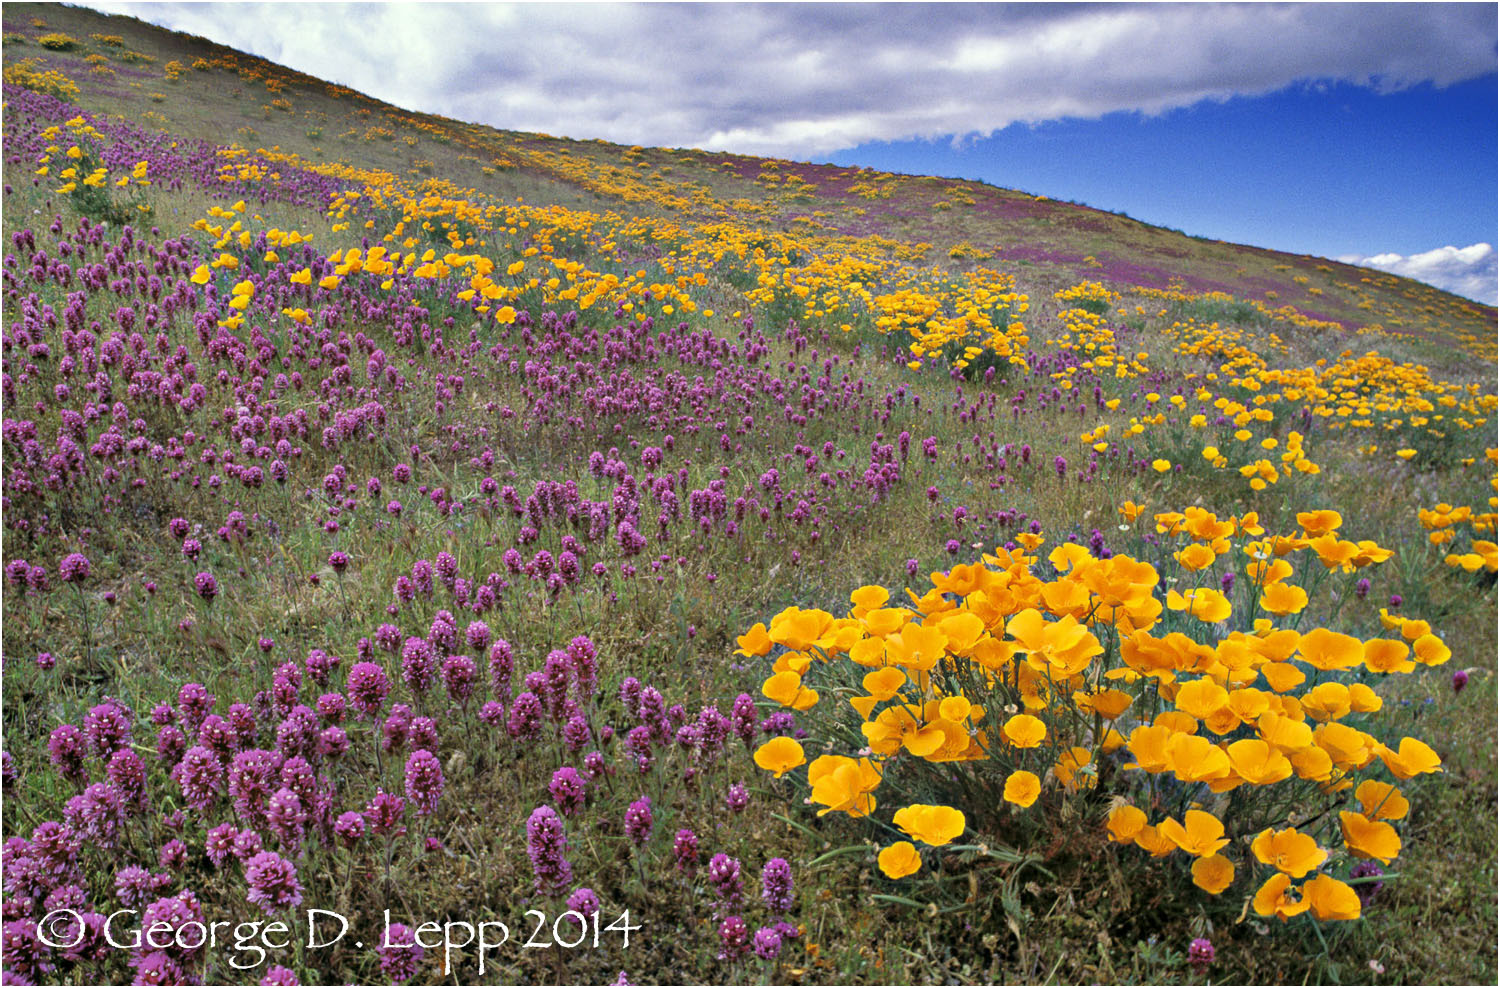 California Poppy.     © George D. Lepp 2014  PW-PO-0046